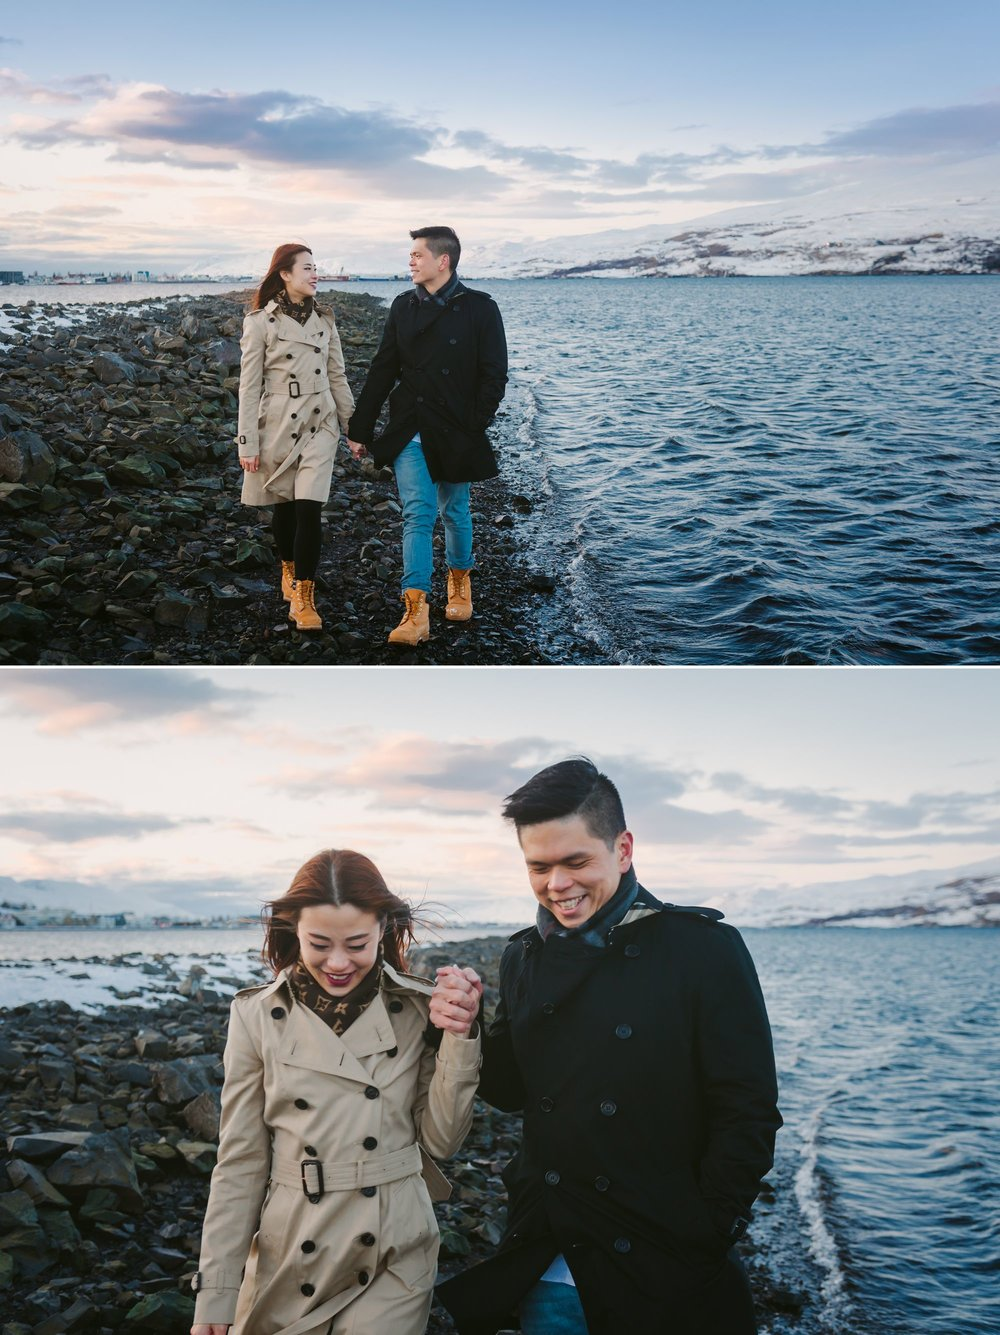 iceland_prewedding_photography 20.jpg